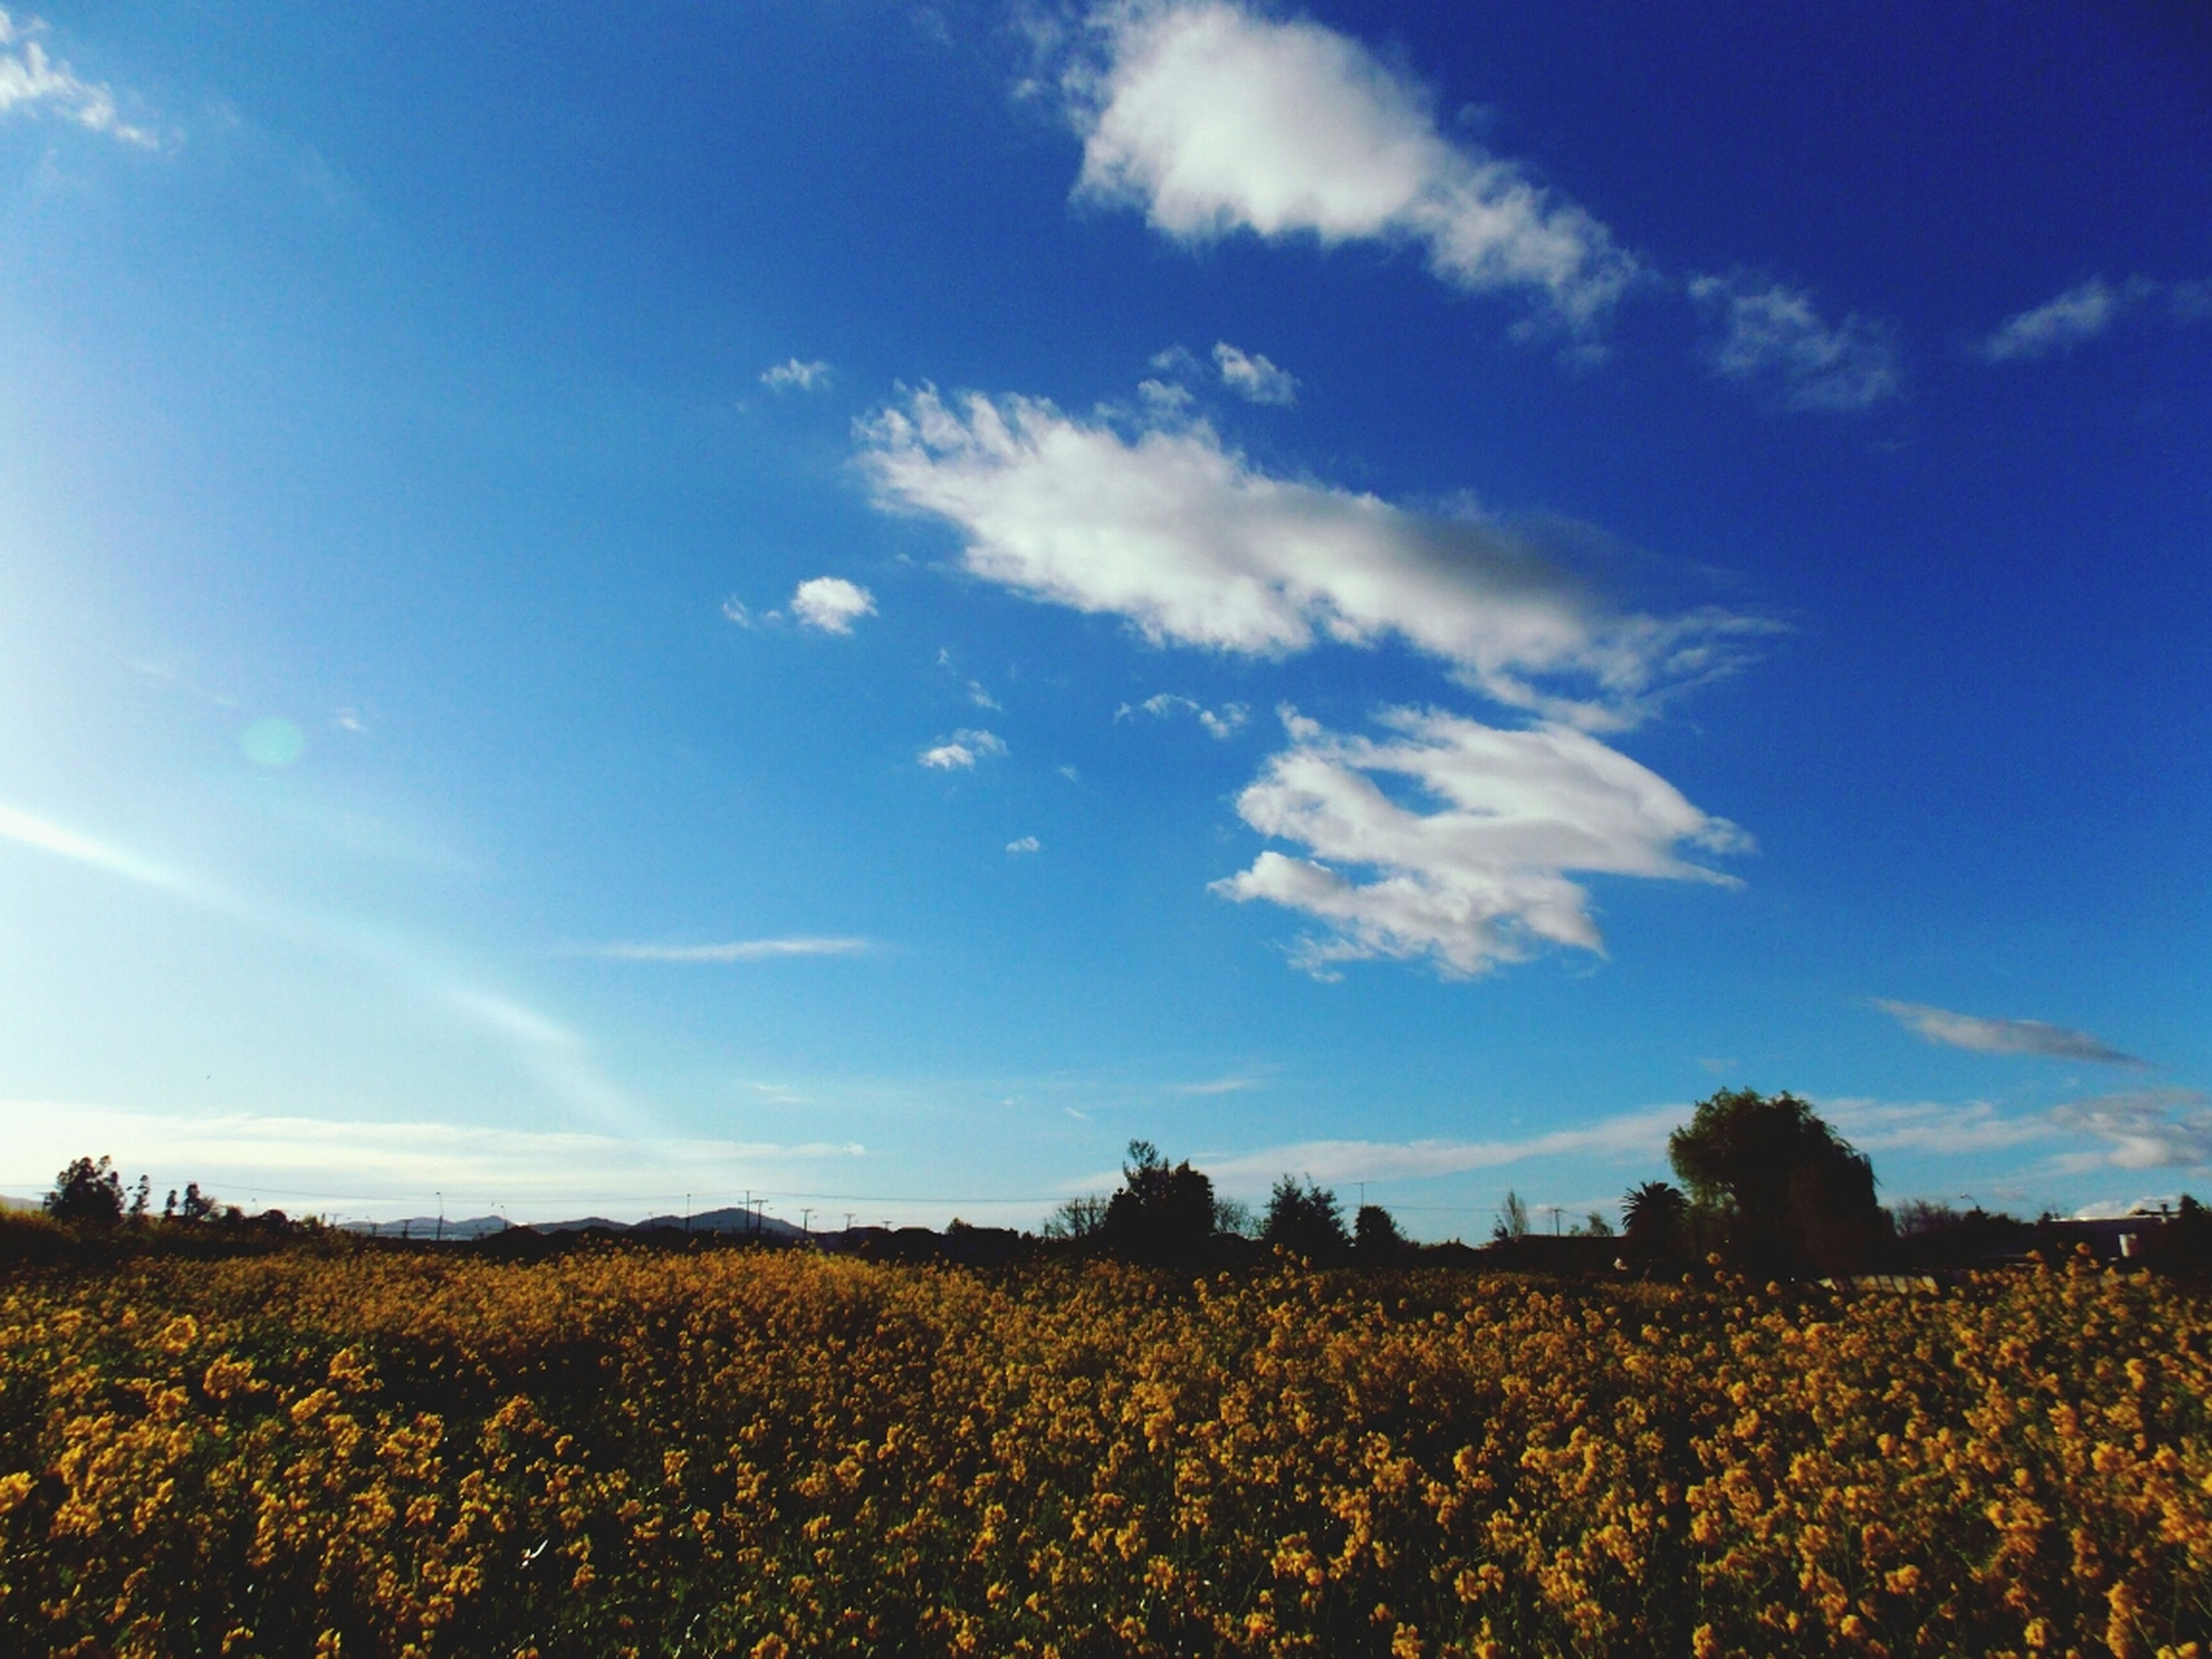 field, agriculture, rural scene, beauty in nature, flower, landscape, sky, growth, tranquil scene, tranquility, nature, scenics, blue, farm, yellow, crop, cloud - sky, plant, abundance, freshness